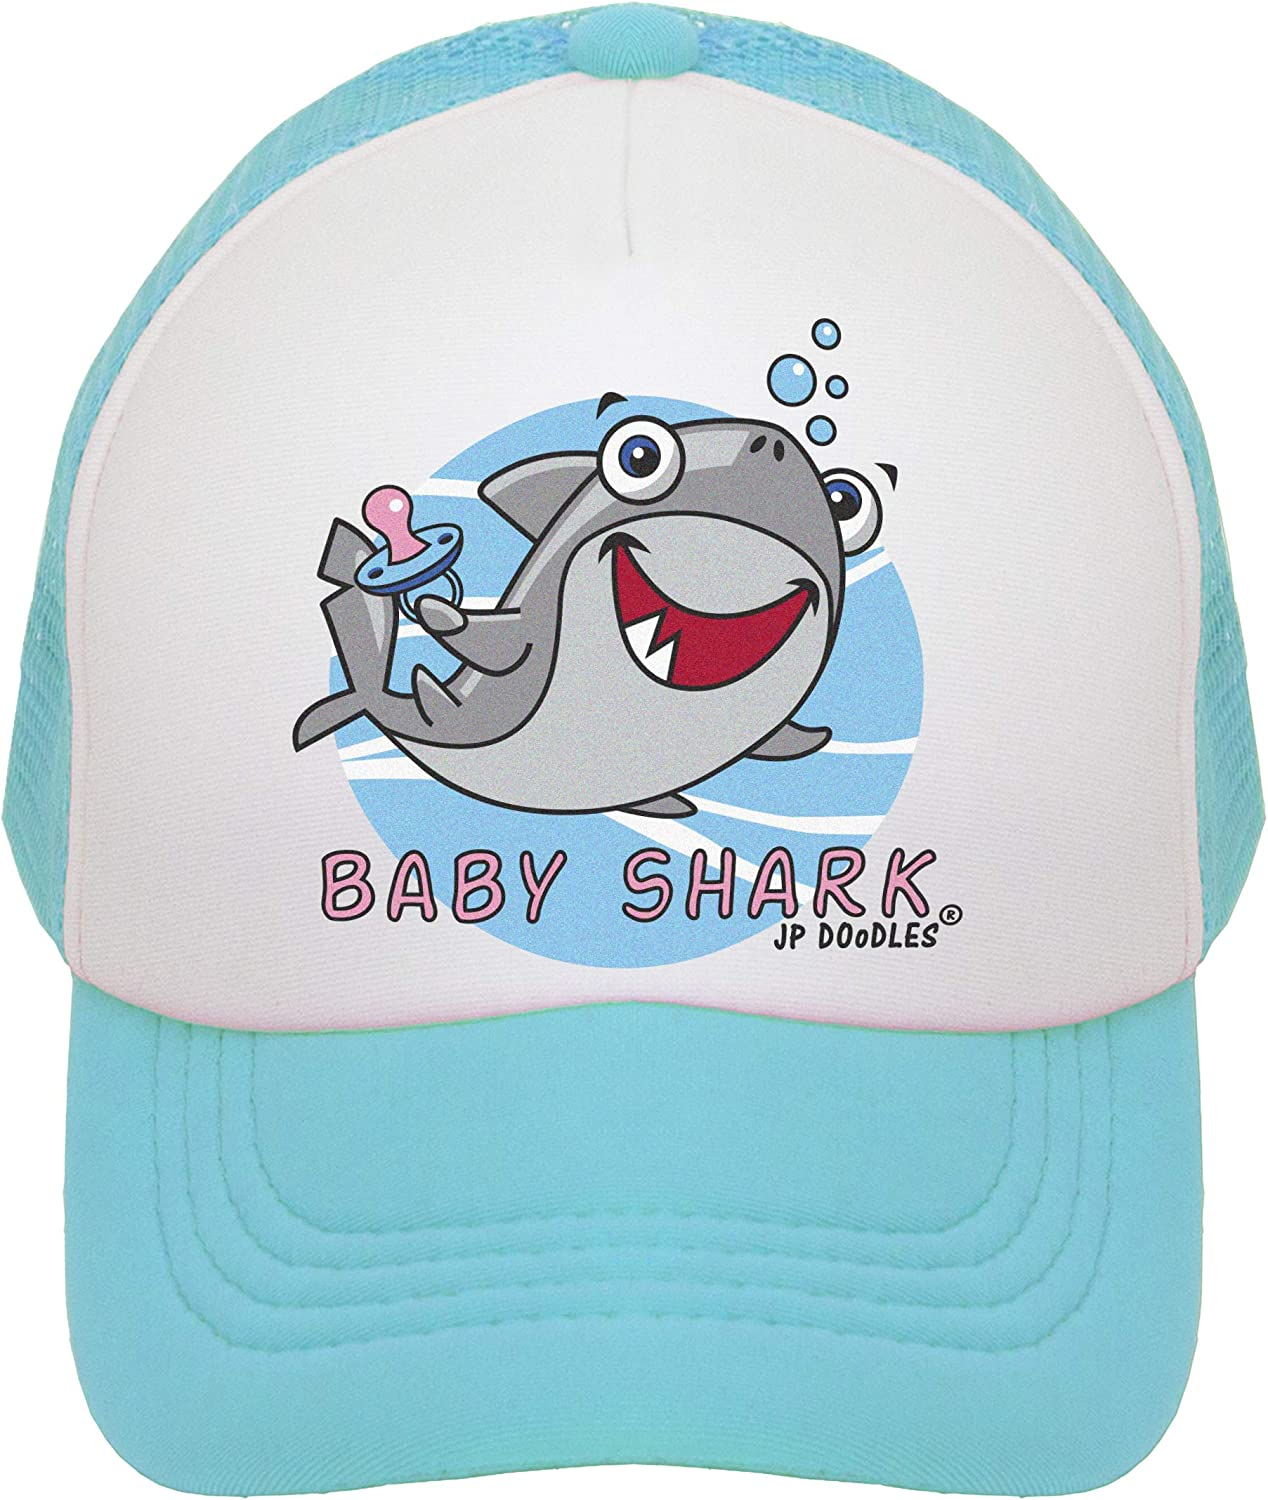 JP DOoDLES Baby Shark Hat Kids Trucker Hat. Baseball Mesh Back Cap fits Baby, Toddler and Youth.